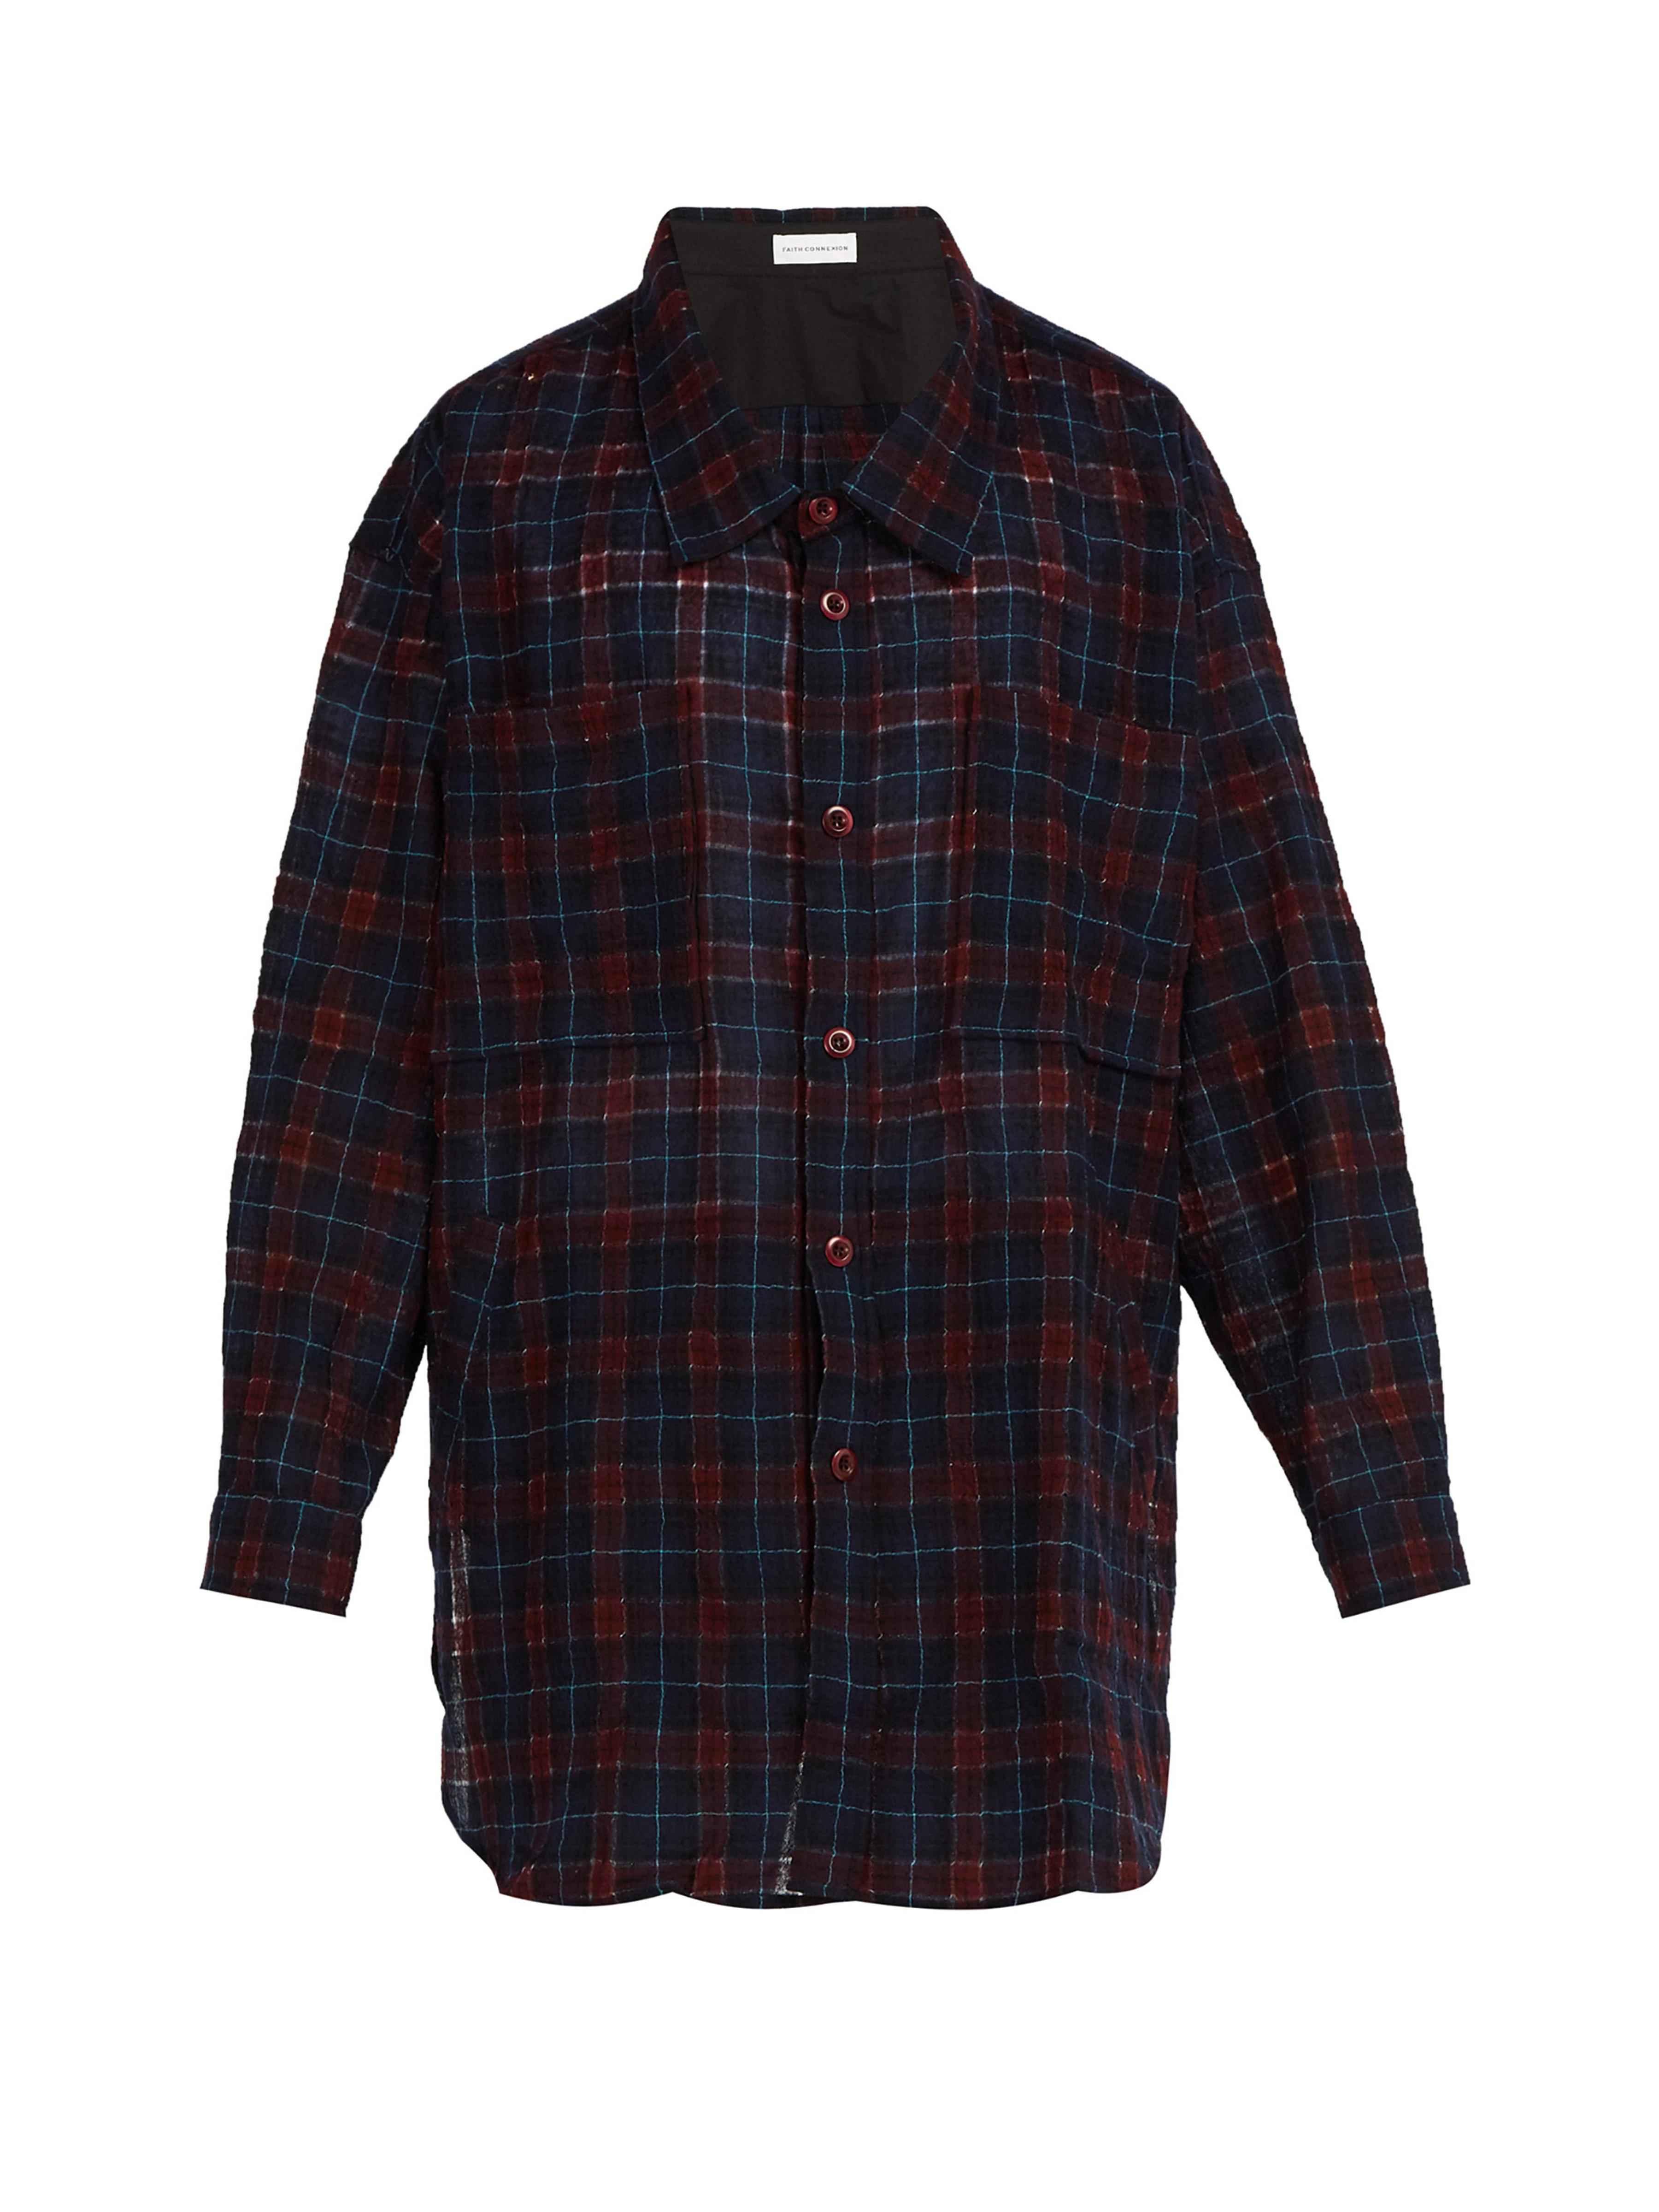 883ff9802712 Faith Connexion Oversized Wool Blend Check Shirt in Blue for Men - Lyst